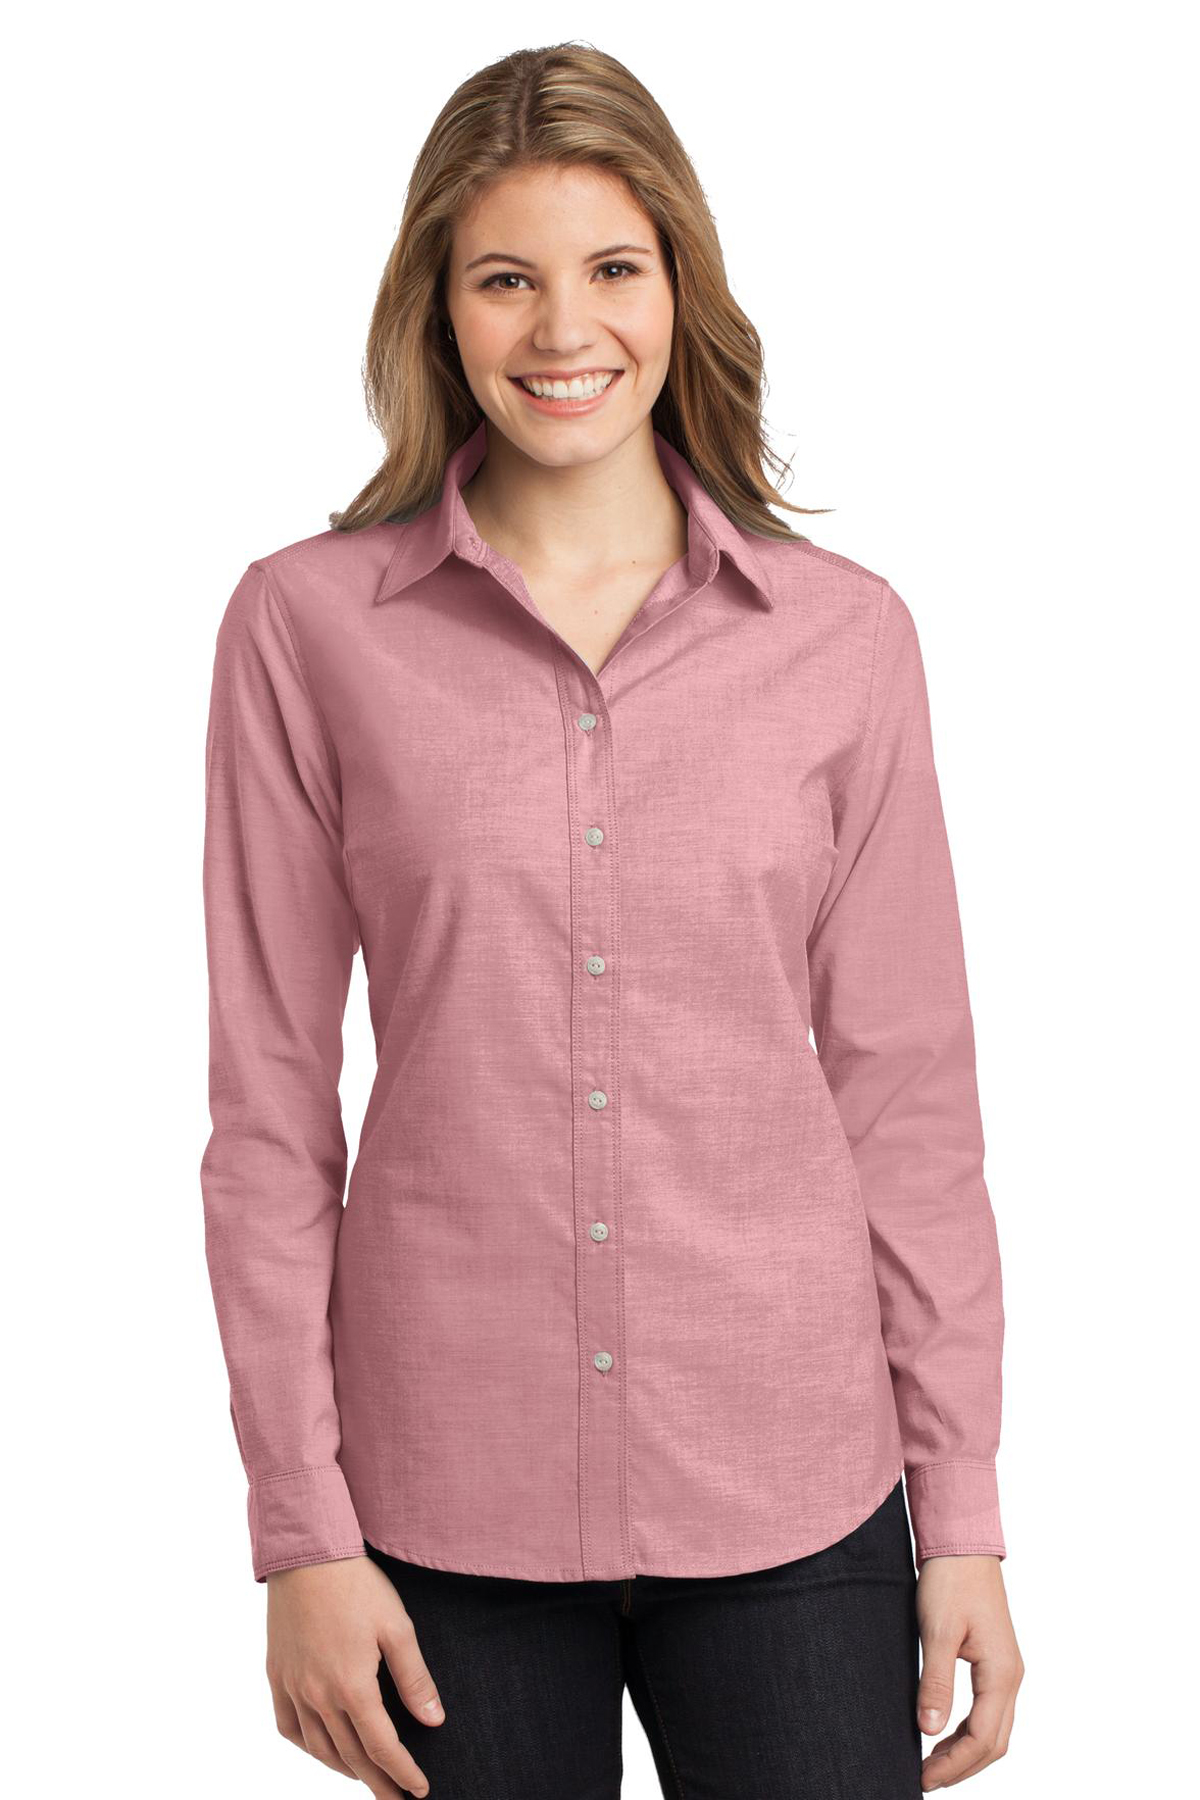 Woven-Shirts-Easy-Care-19